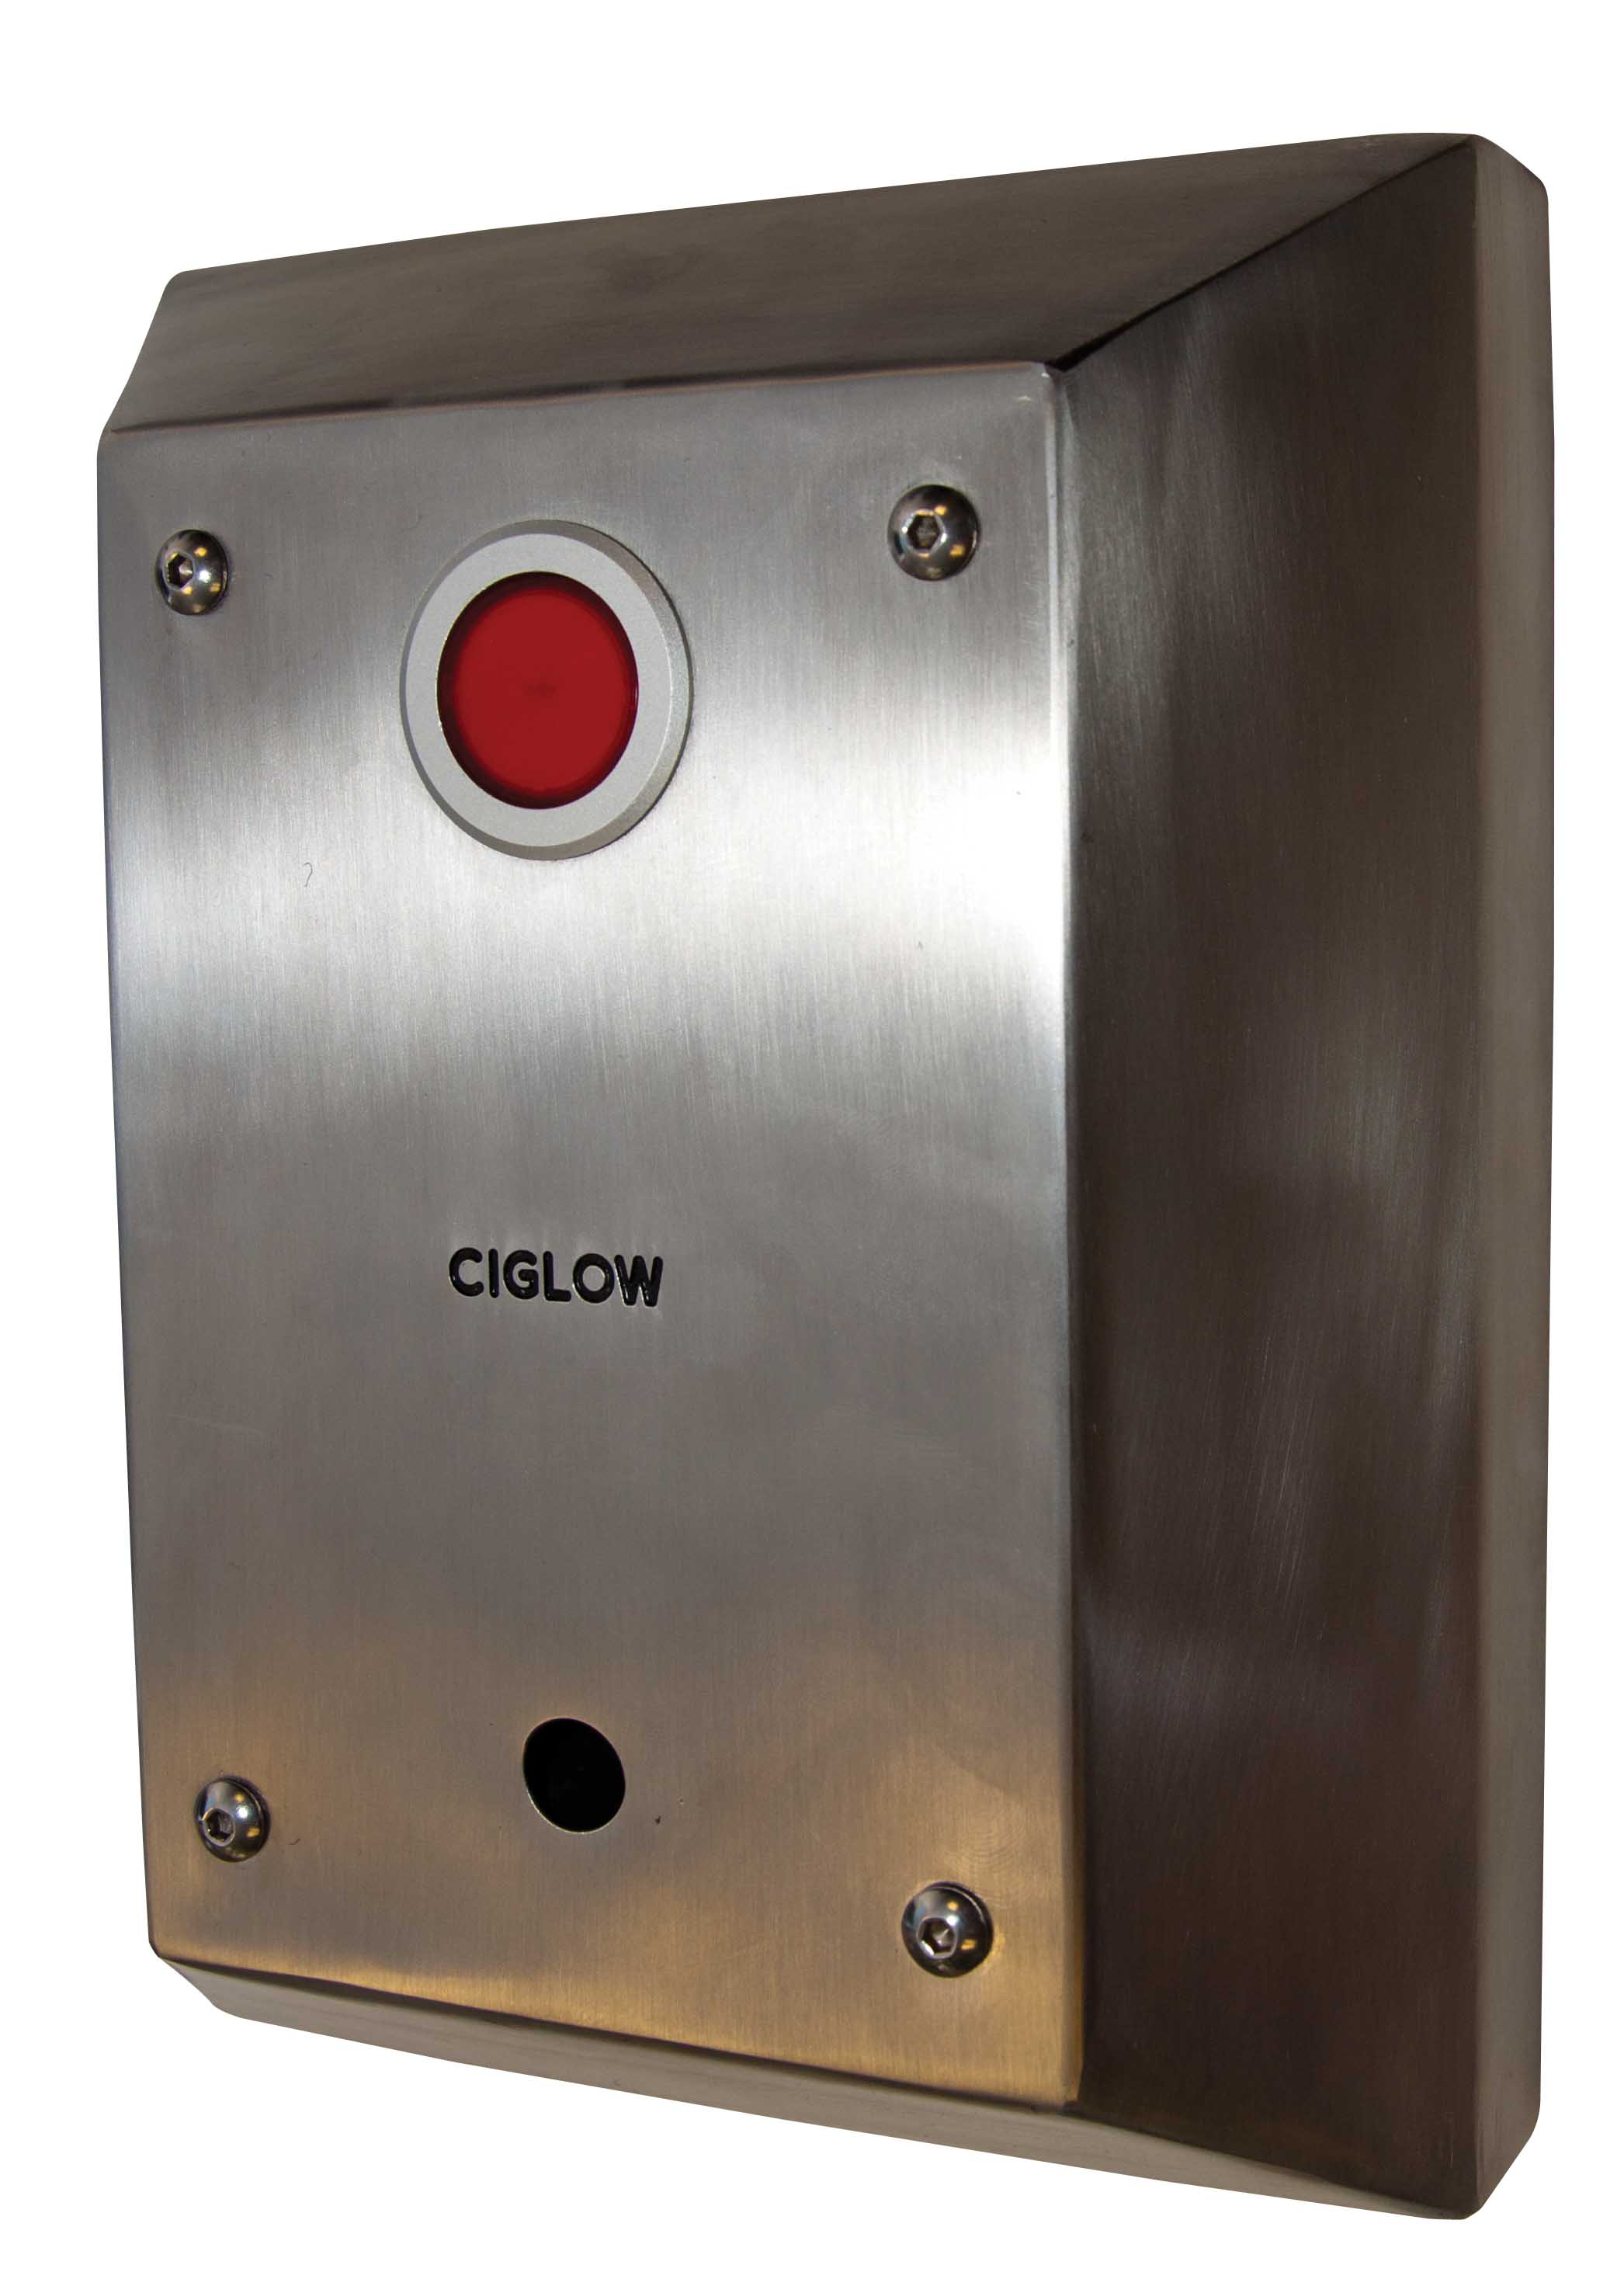 Chart Holder Wall Mount: CIG-SS - Ciglow IP65 Rated Wall Mounted Flameless Lighter.jpg ,Chart